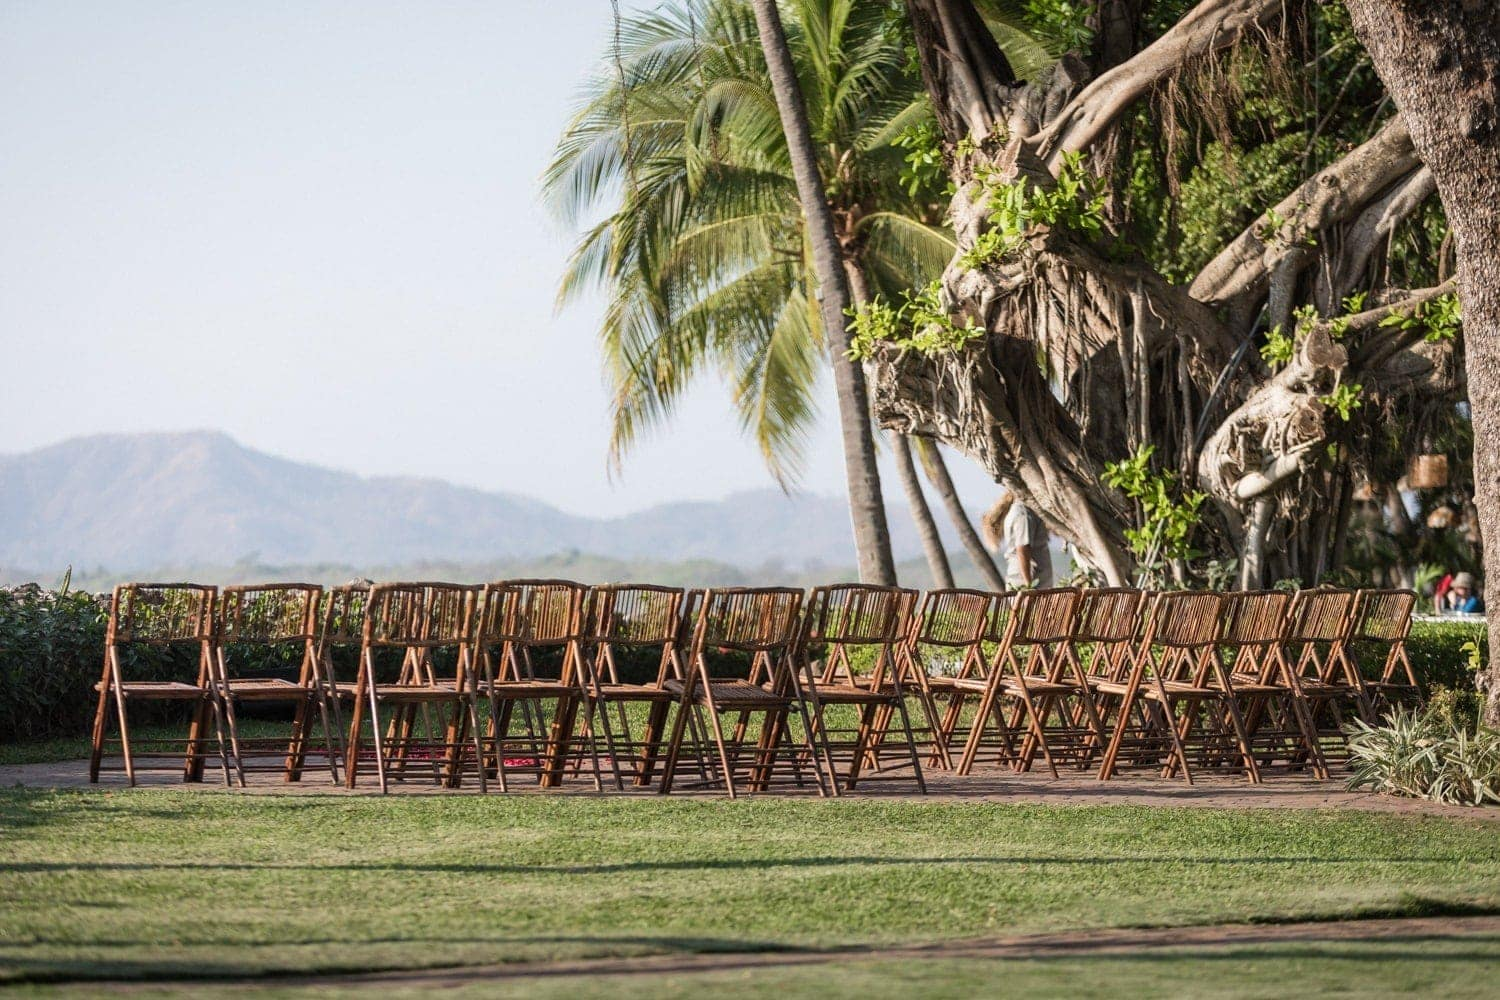 Lawn venue for weddings at Tamarindo Beach Resort in Costa Rica.